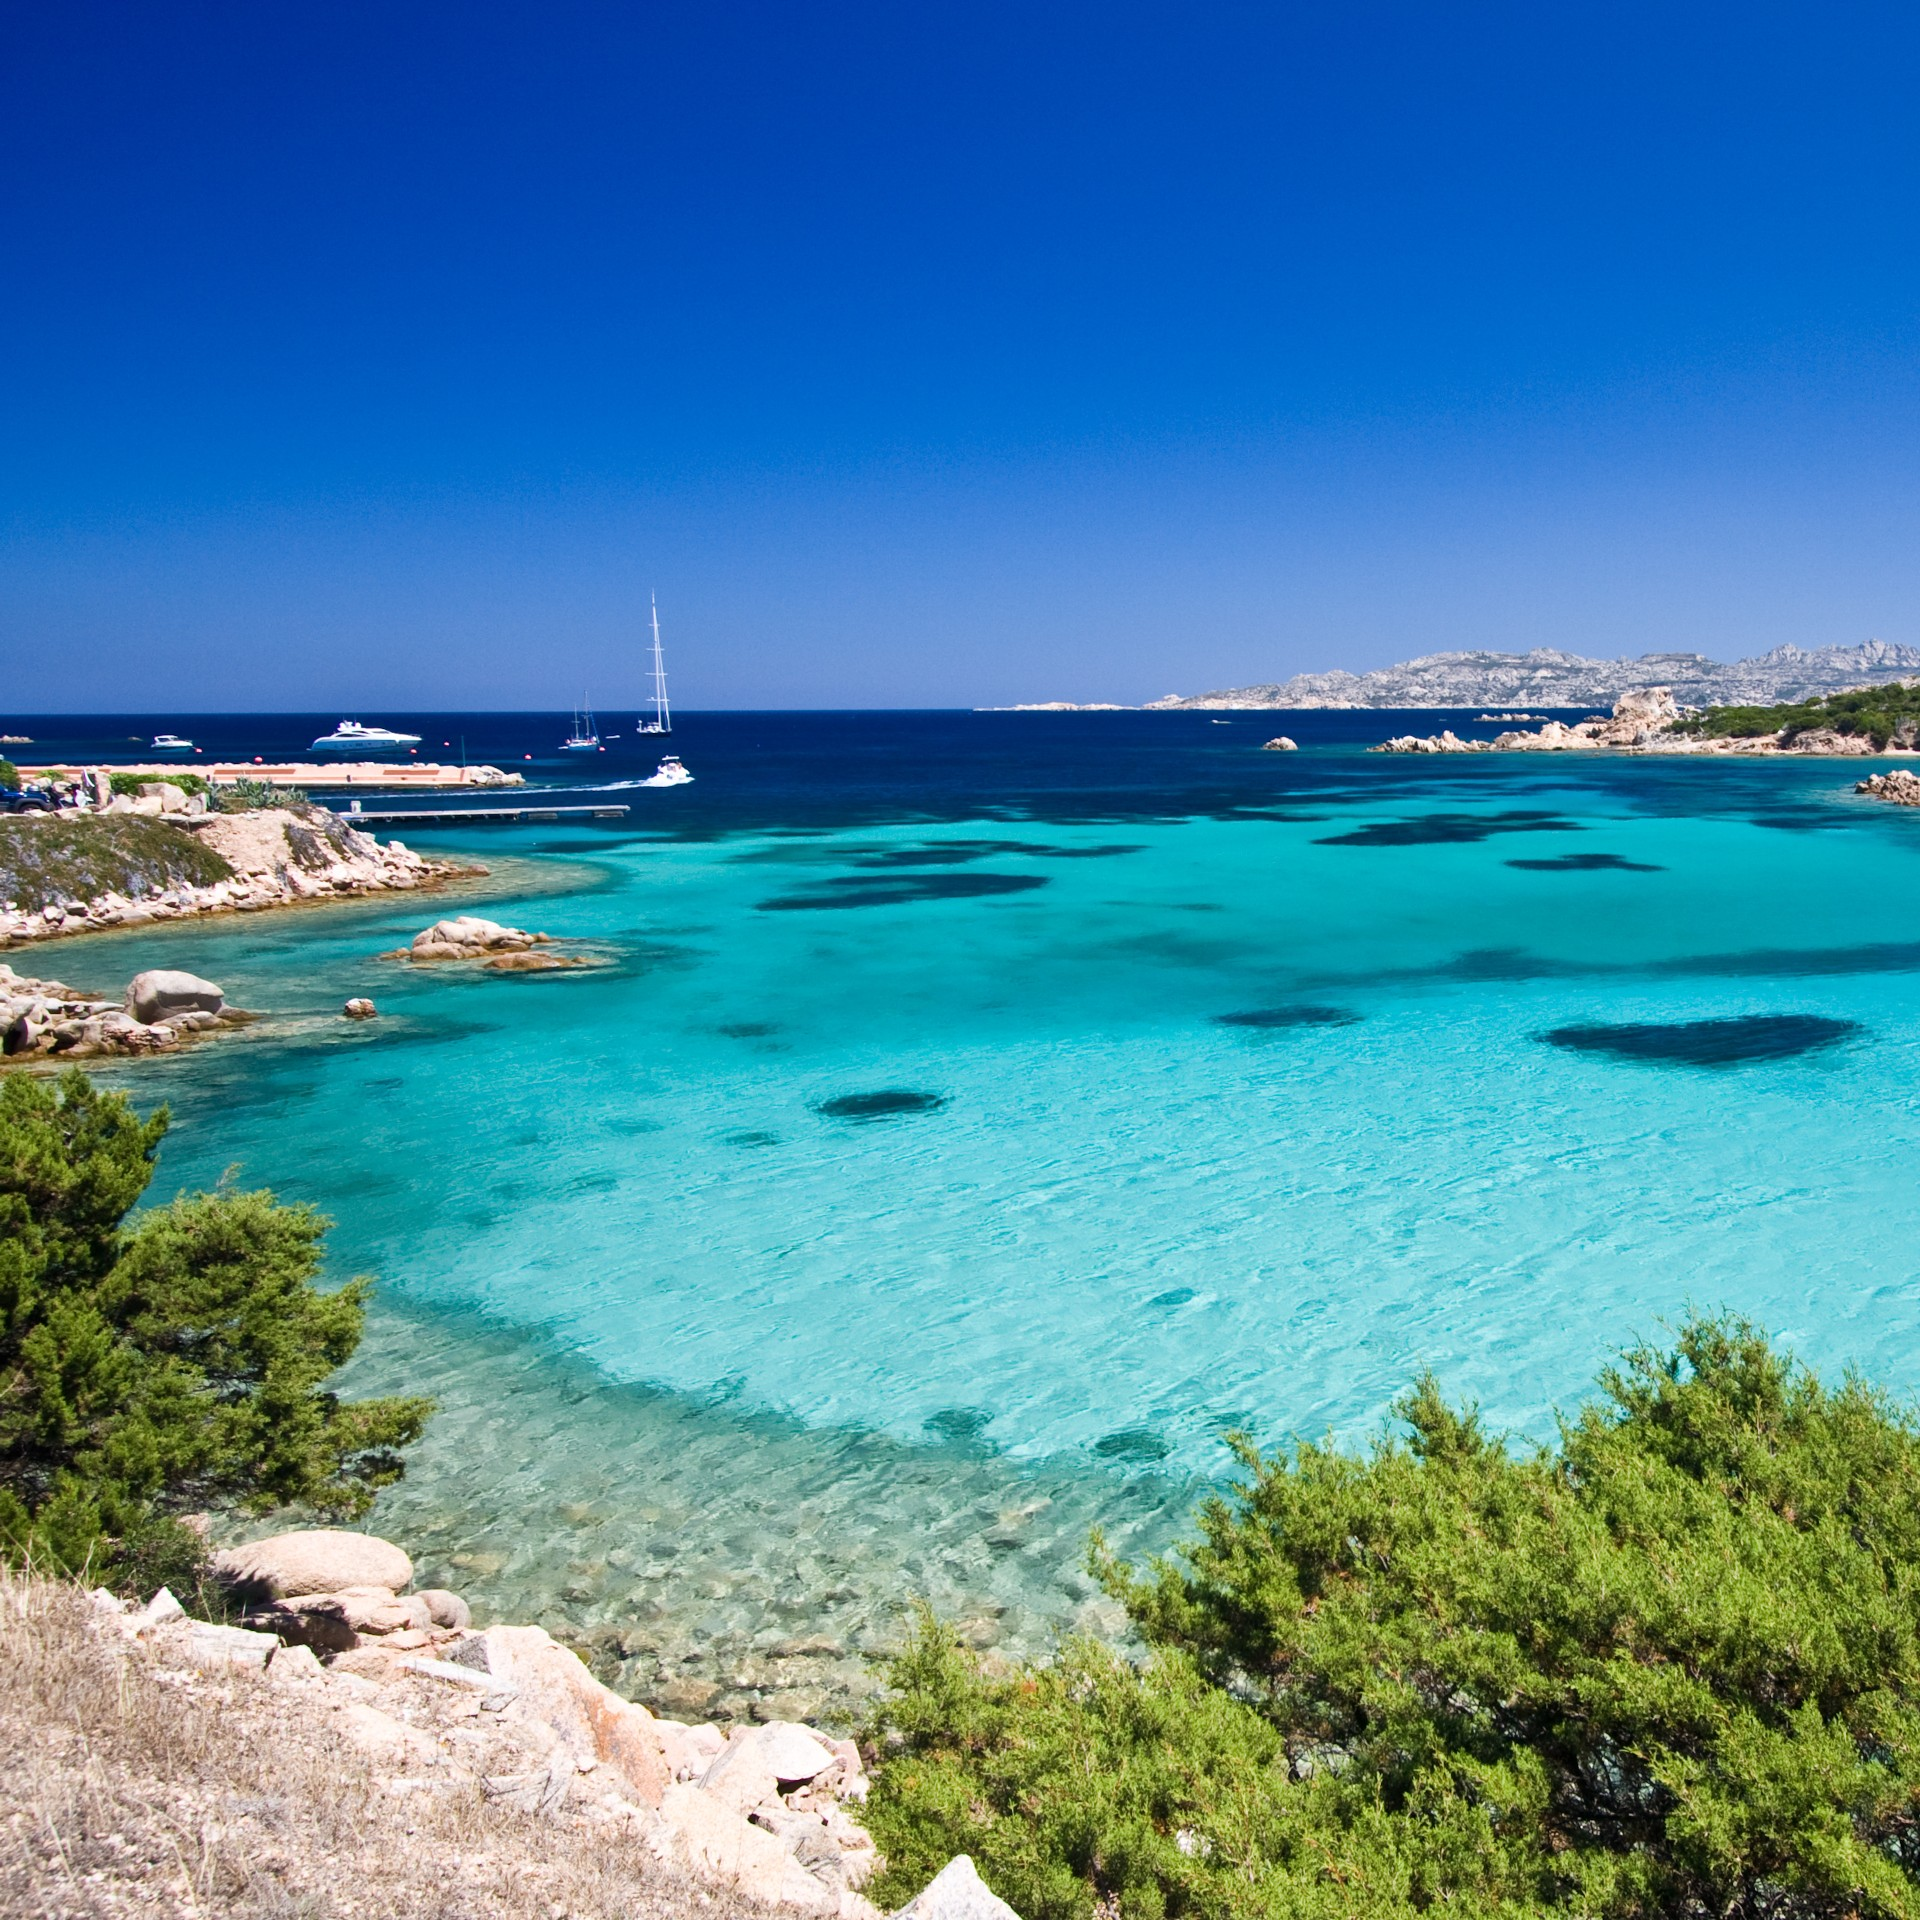 French Riviera - Cruise Guide